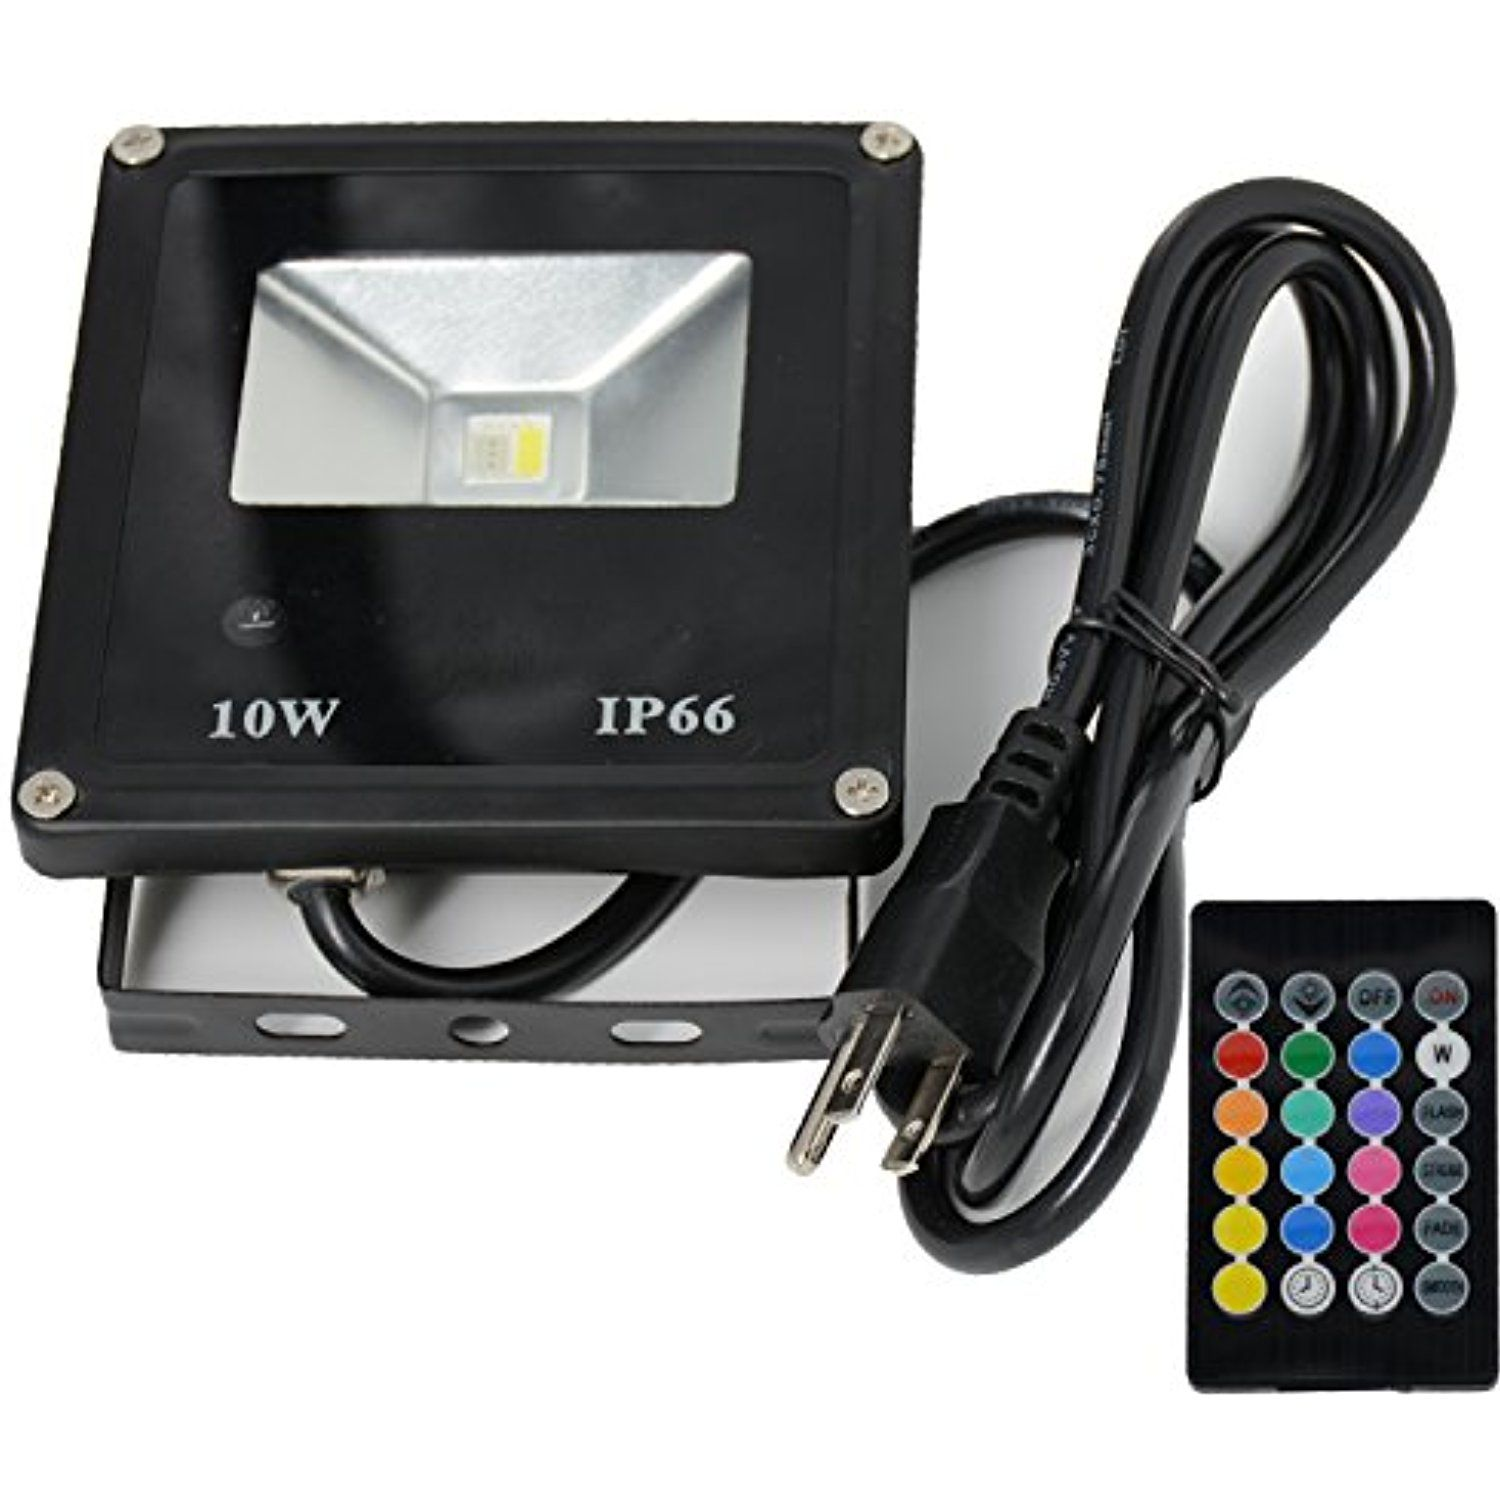 CNSUNWAY 10W Waterproof LED Flood Light, Color Changing